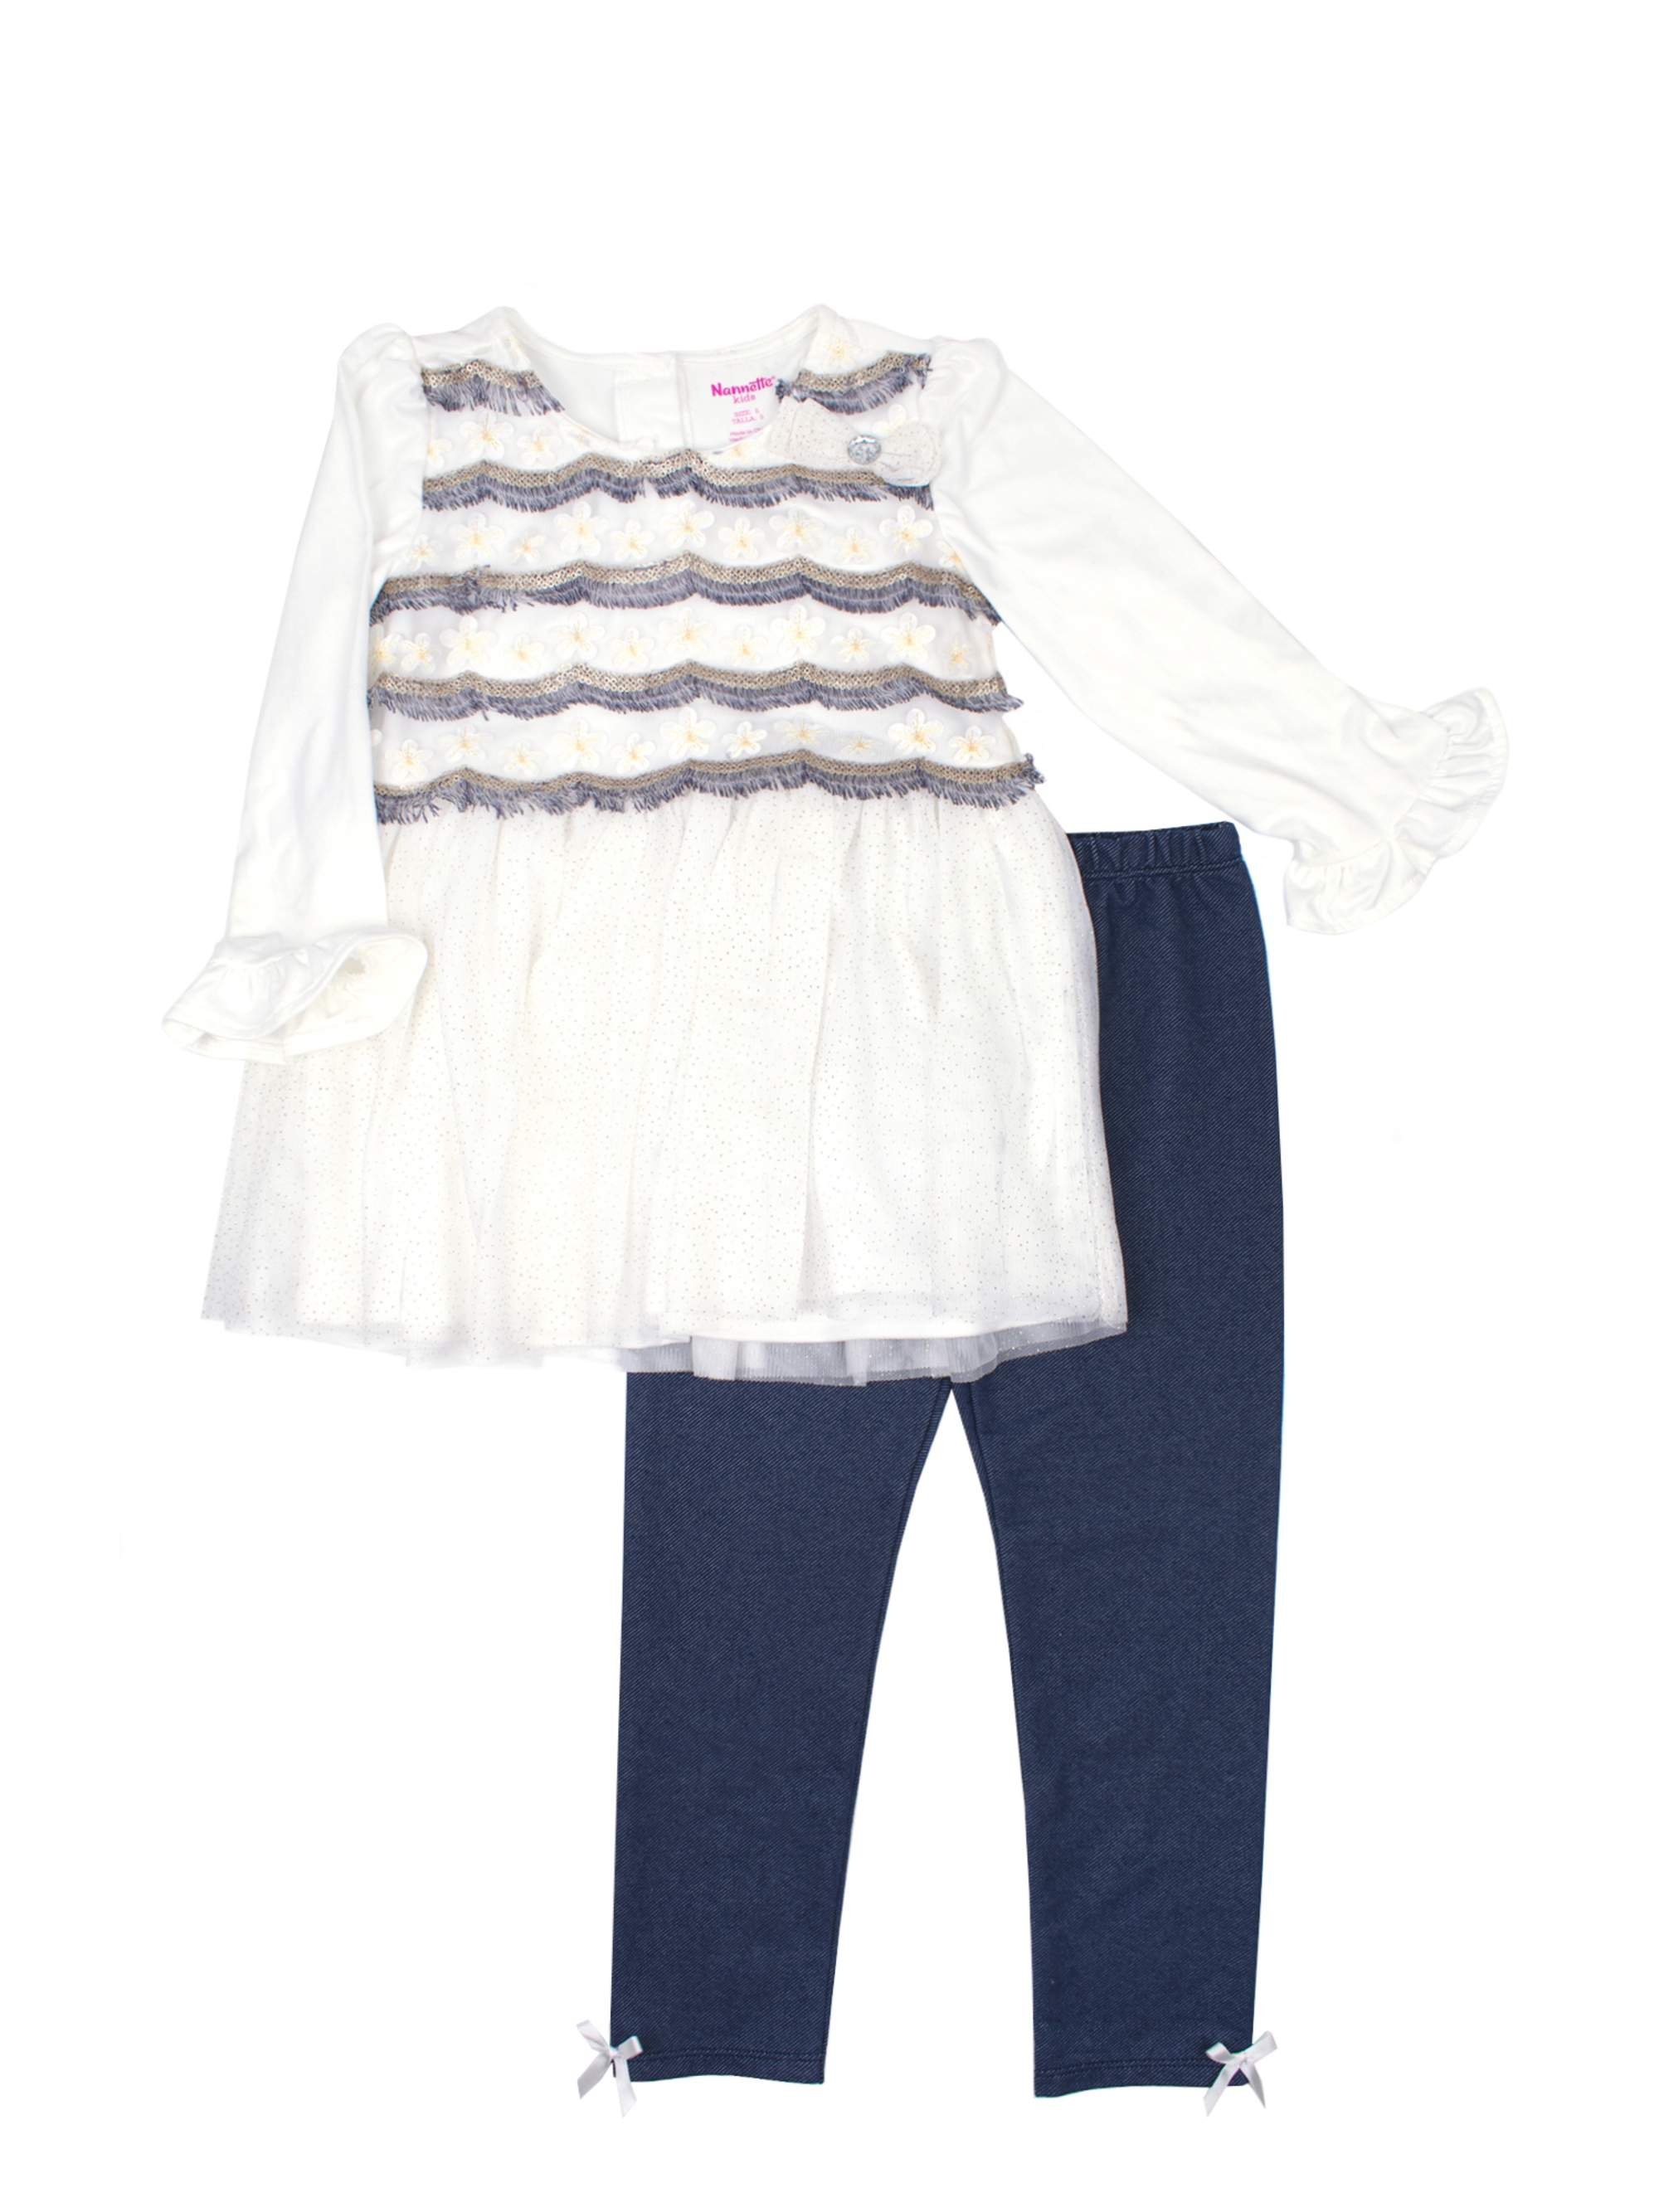 Scallop Mesh Tulle Top and Legging, 2-Piece Outfit Set (Little Girls)